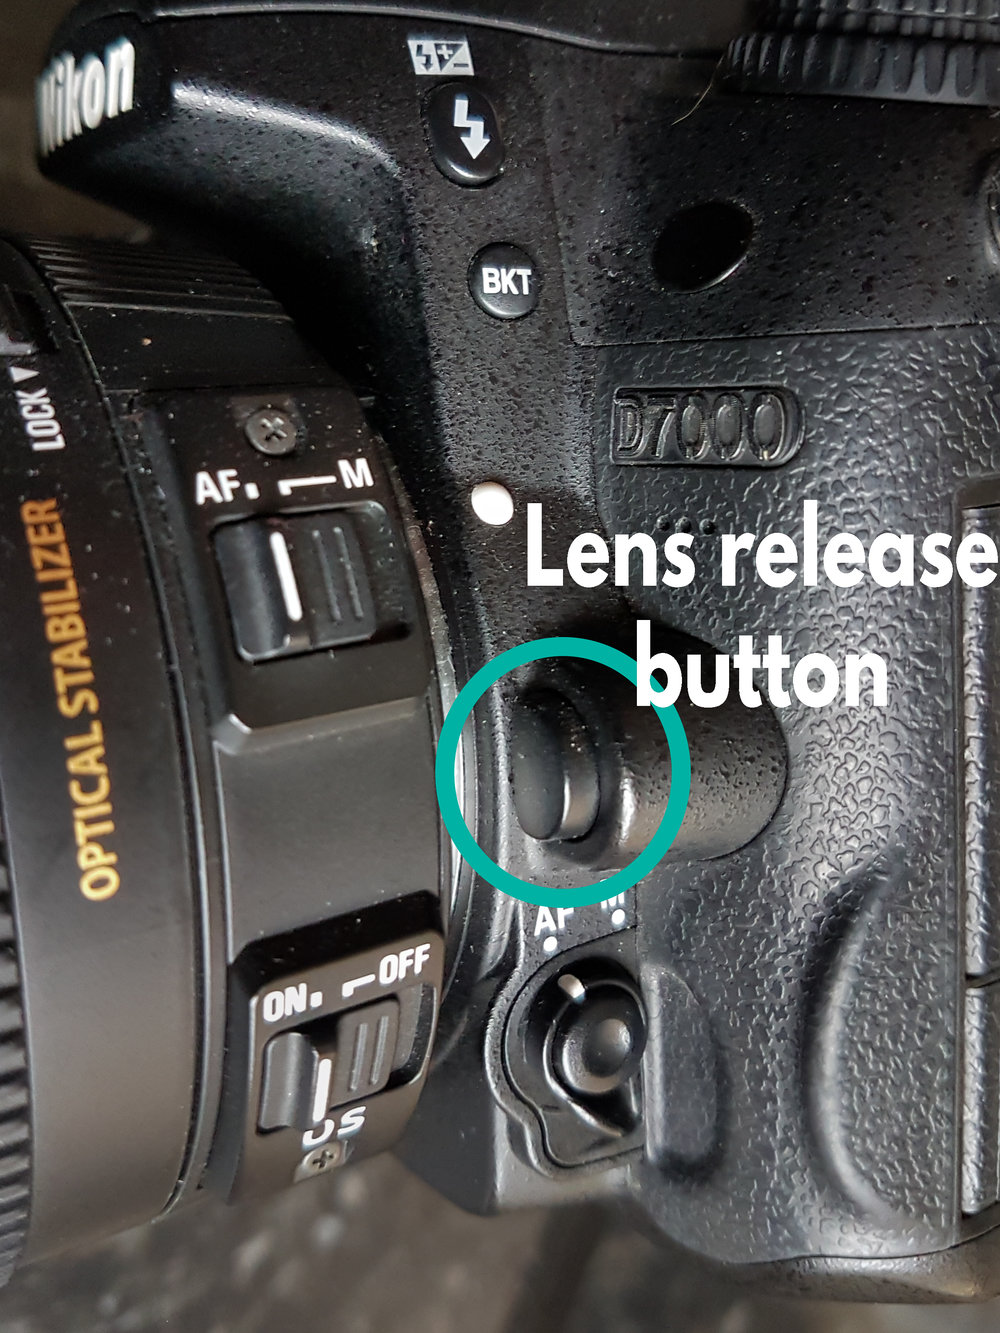 To change lenses, you'll need to press and hold the lens release button before twisting the lens off